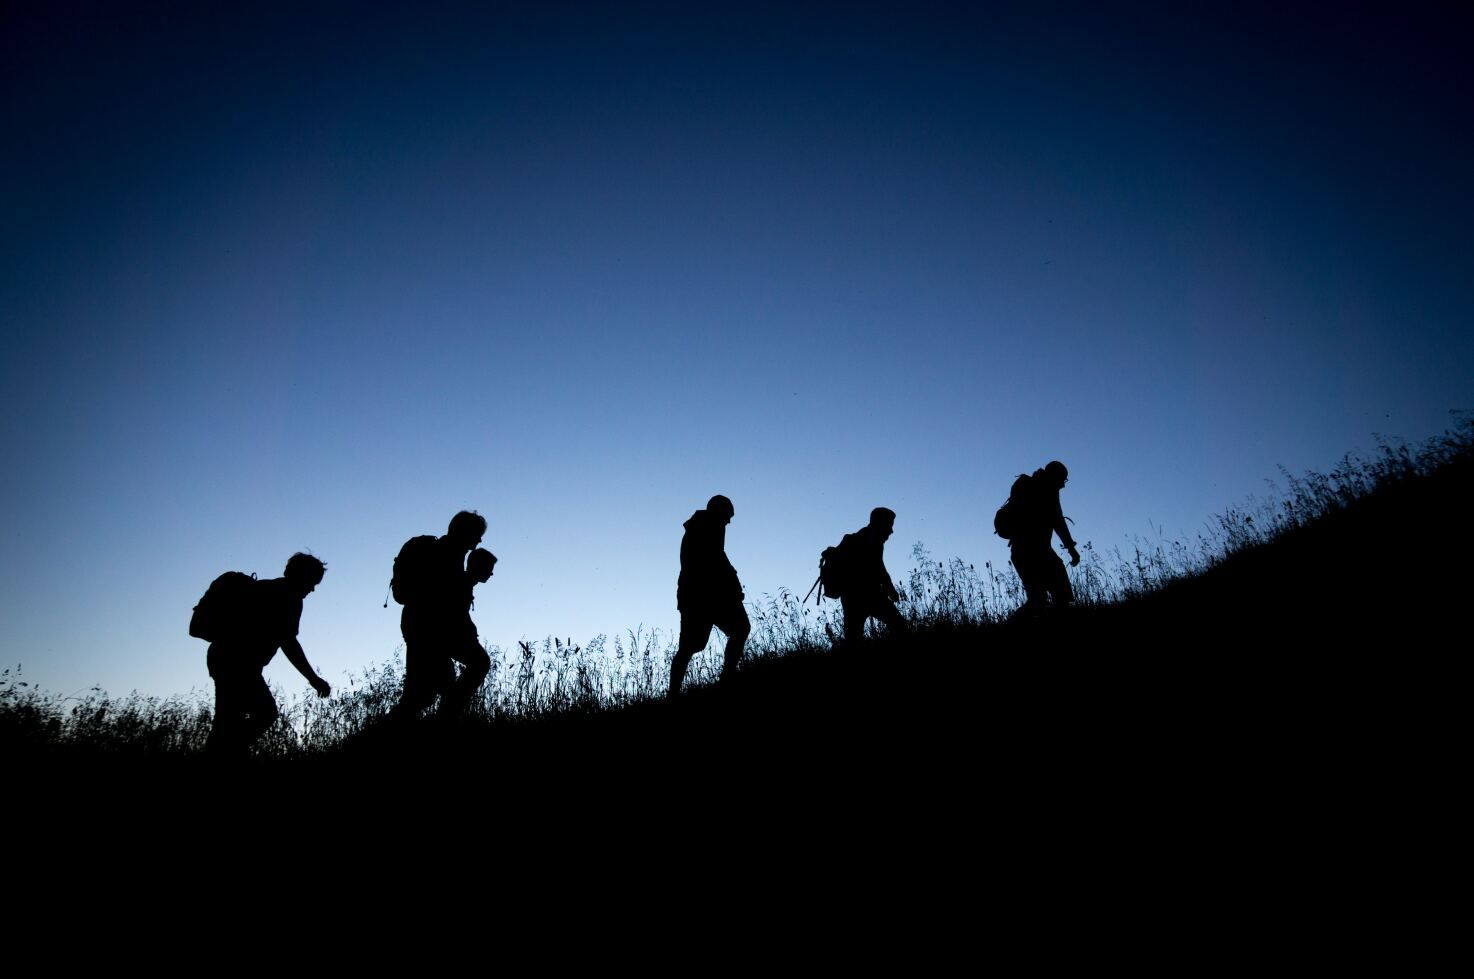 Elevation Service Use Case: Hiking